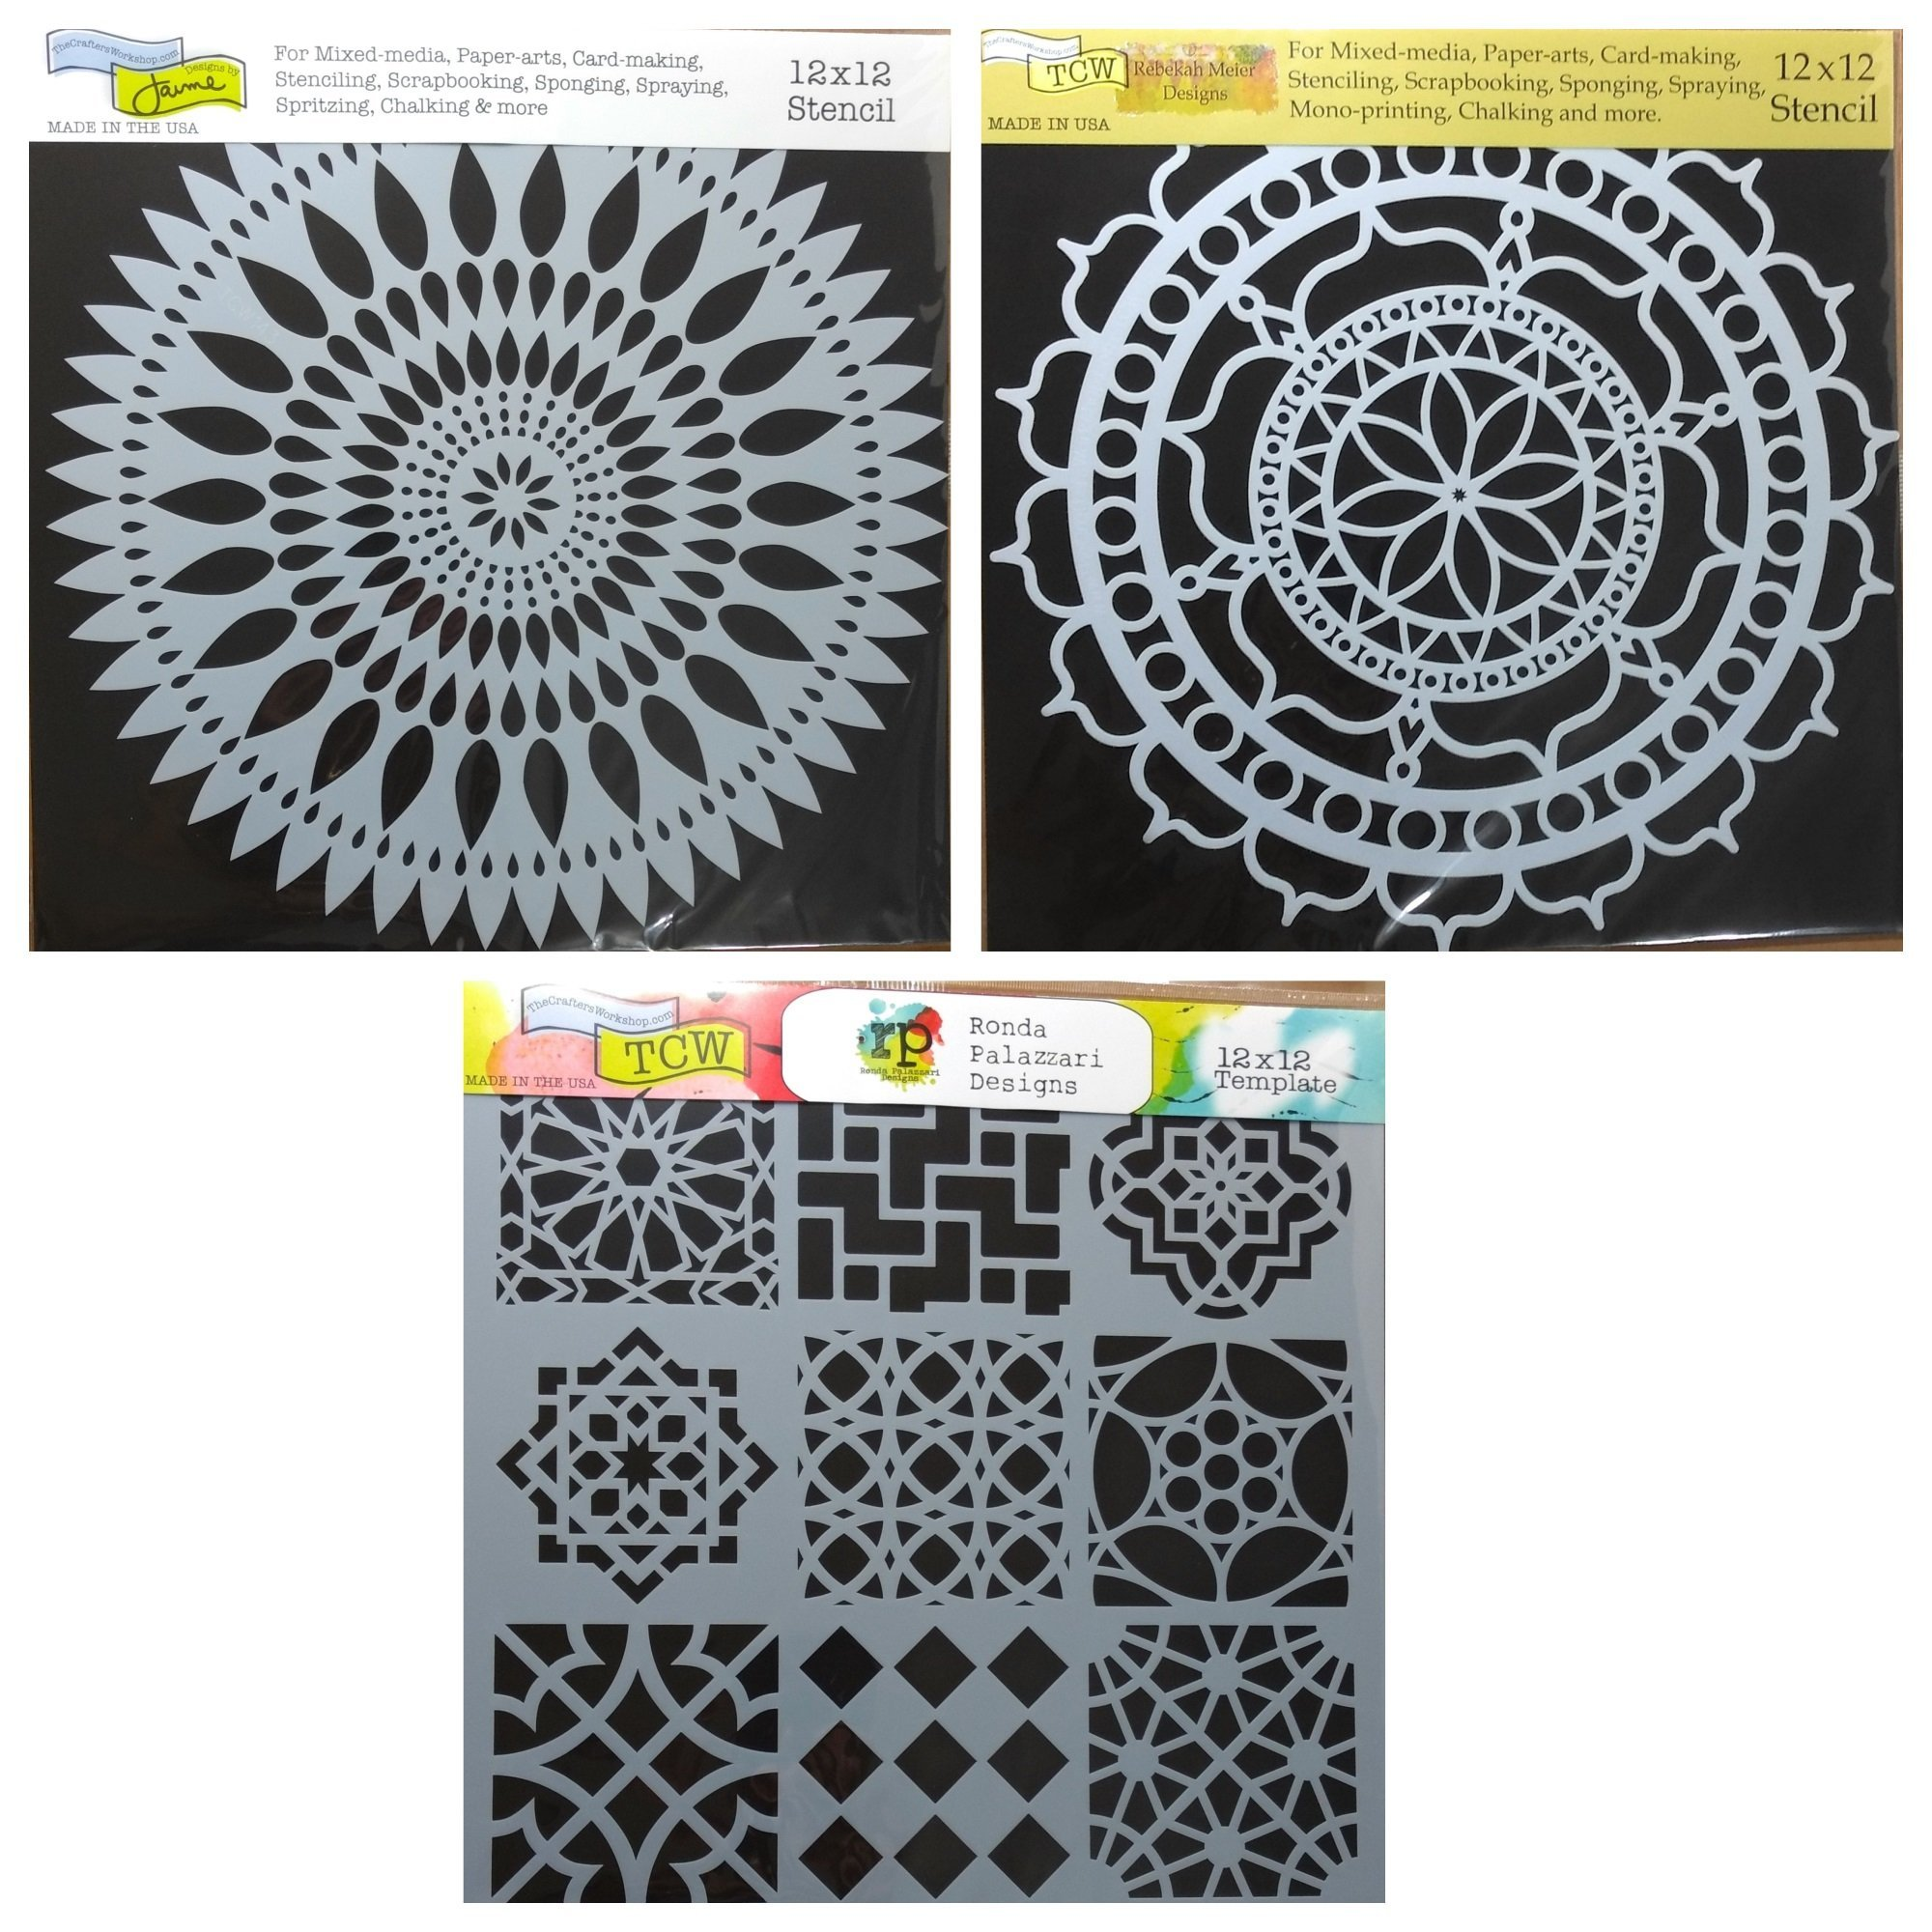 3 Crafters Workshop Large Mixed Media Stencils Set   for Arts, Card Making, Journaling, Scrapbooking   12 Inch x 12 Inch Templates   To Make Mandala, Mexican Tile, Flower Designs and More